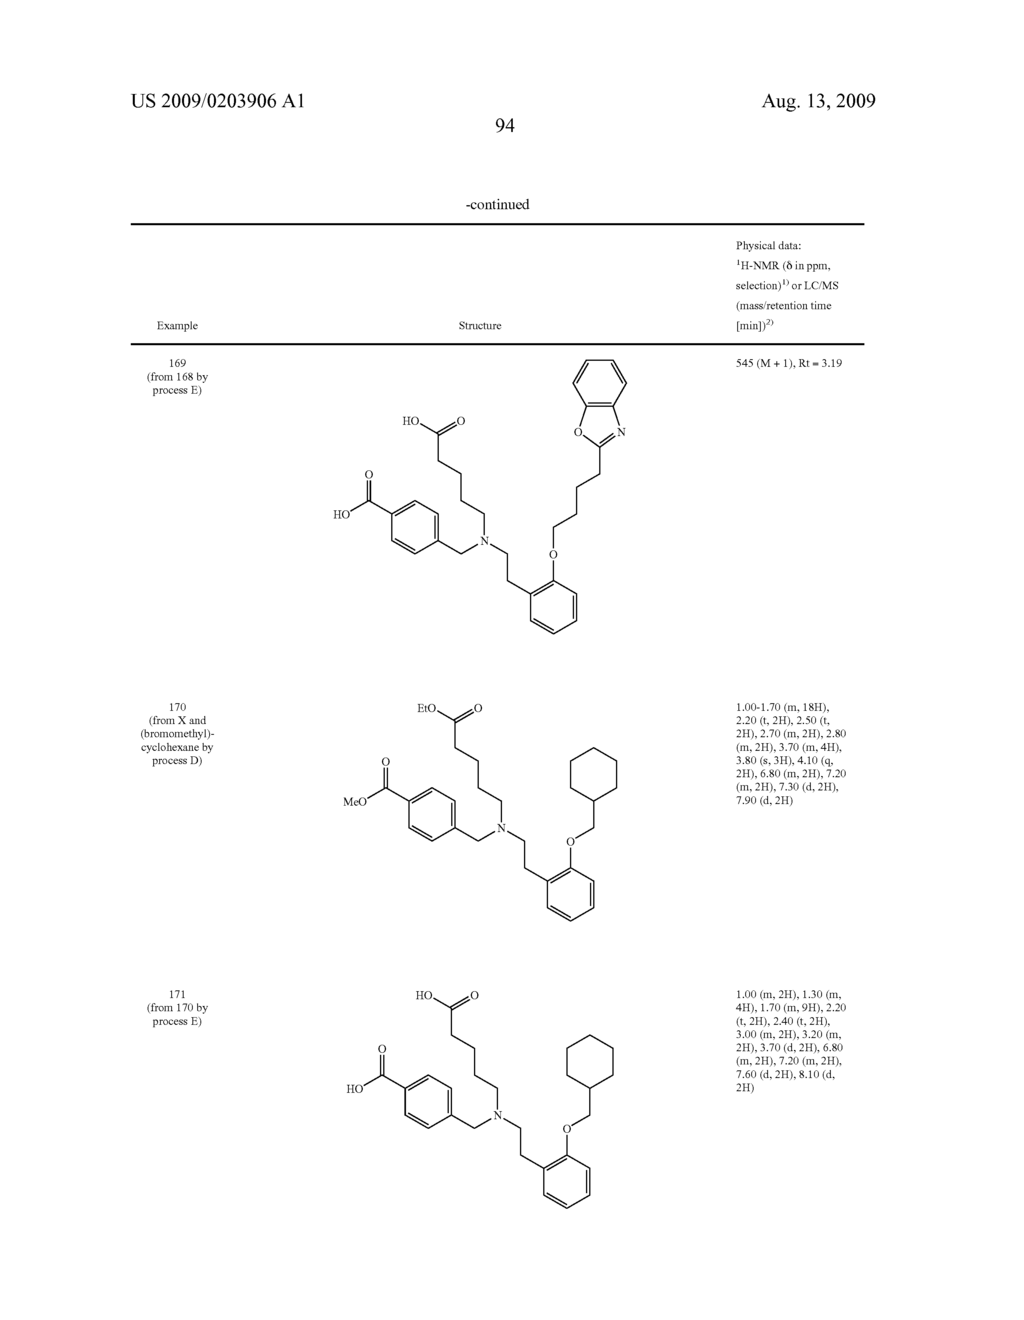 NOVEL AMINODICARBOXYLIC ACID DERIVATIVES HAVING PHARMACEUTICAL PROPERTIES - diagram, schematic, and image 95